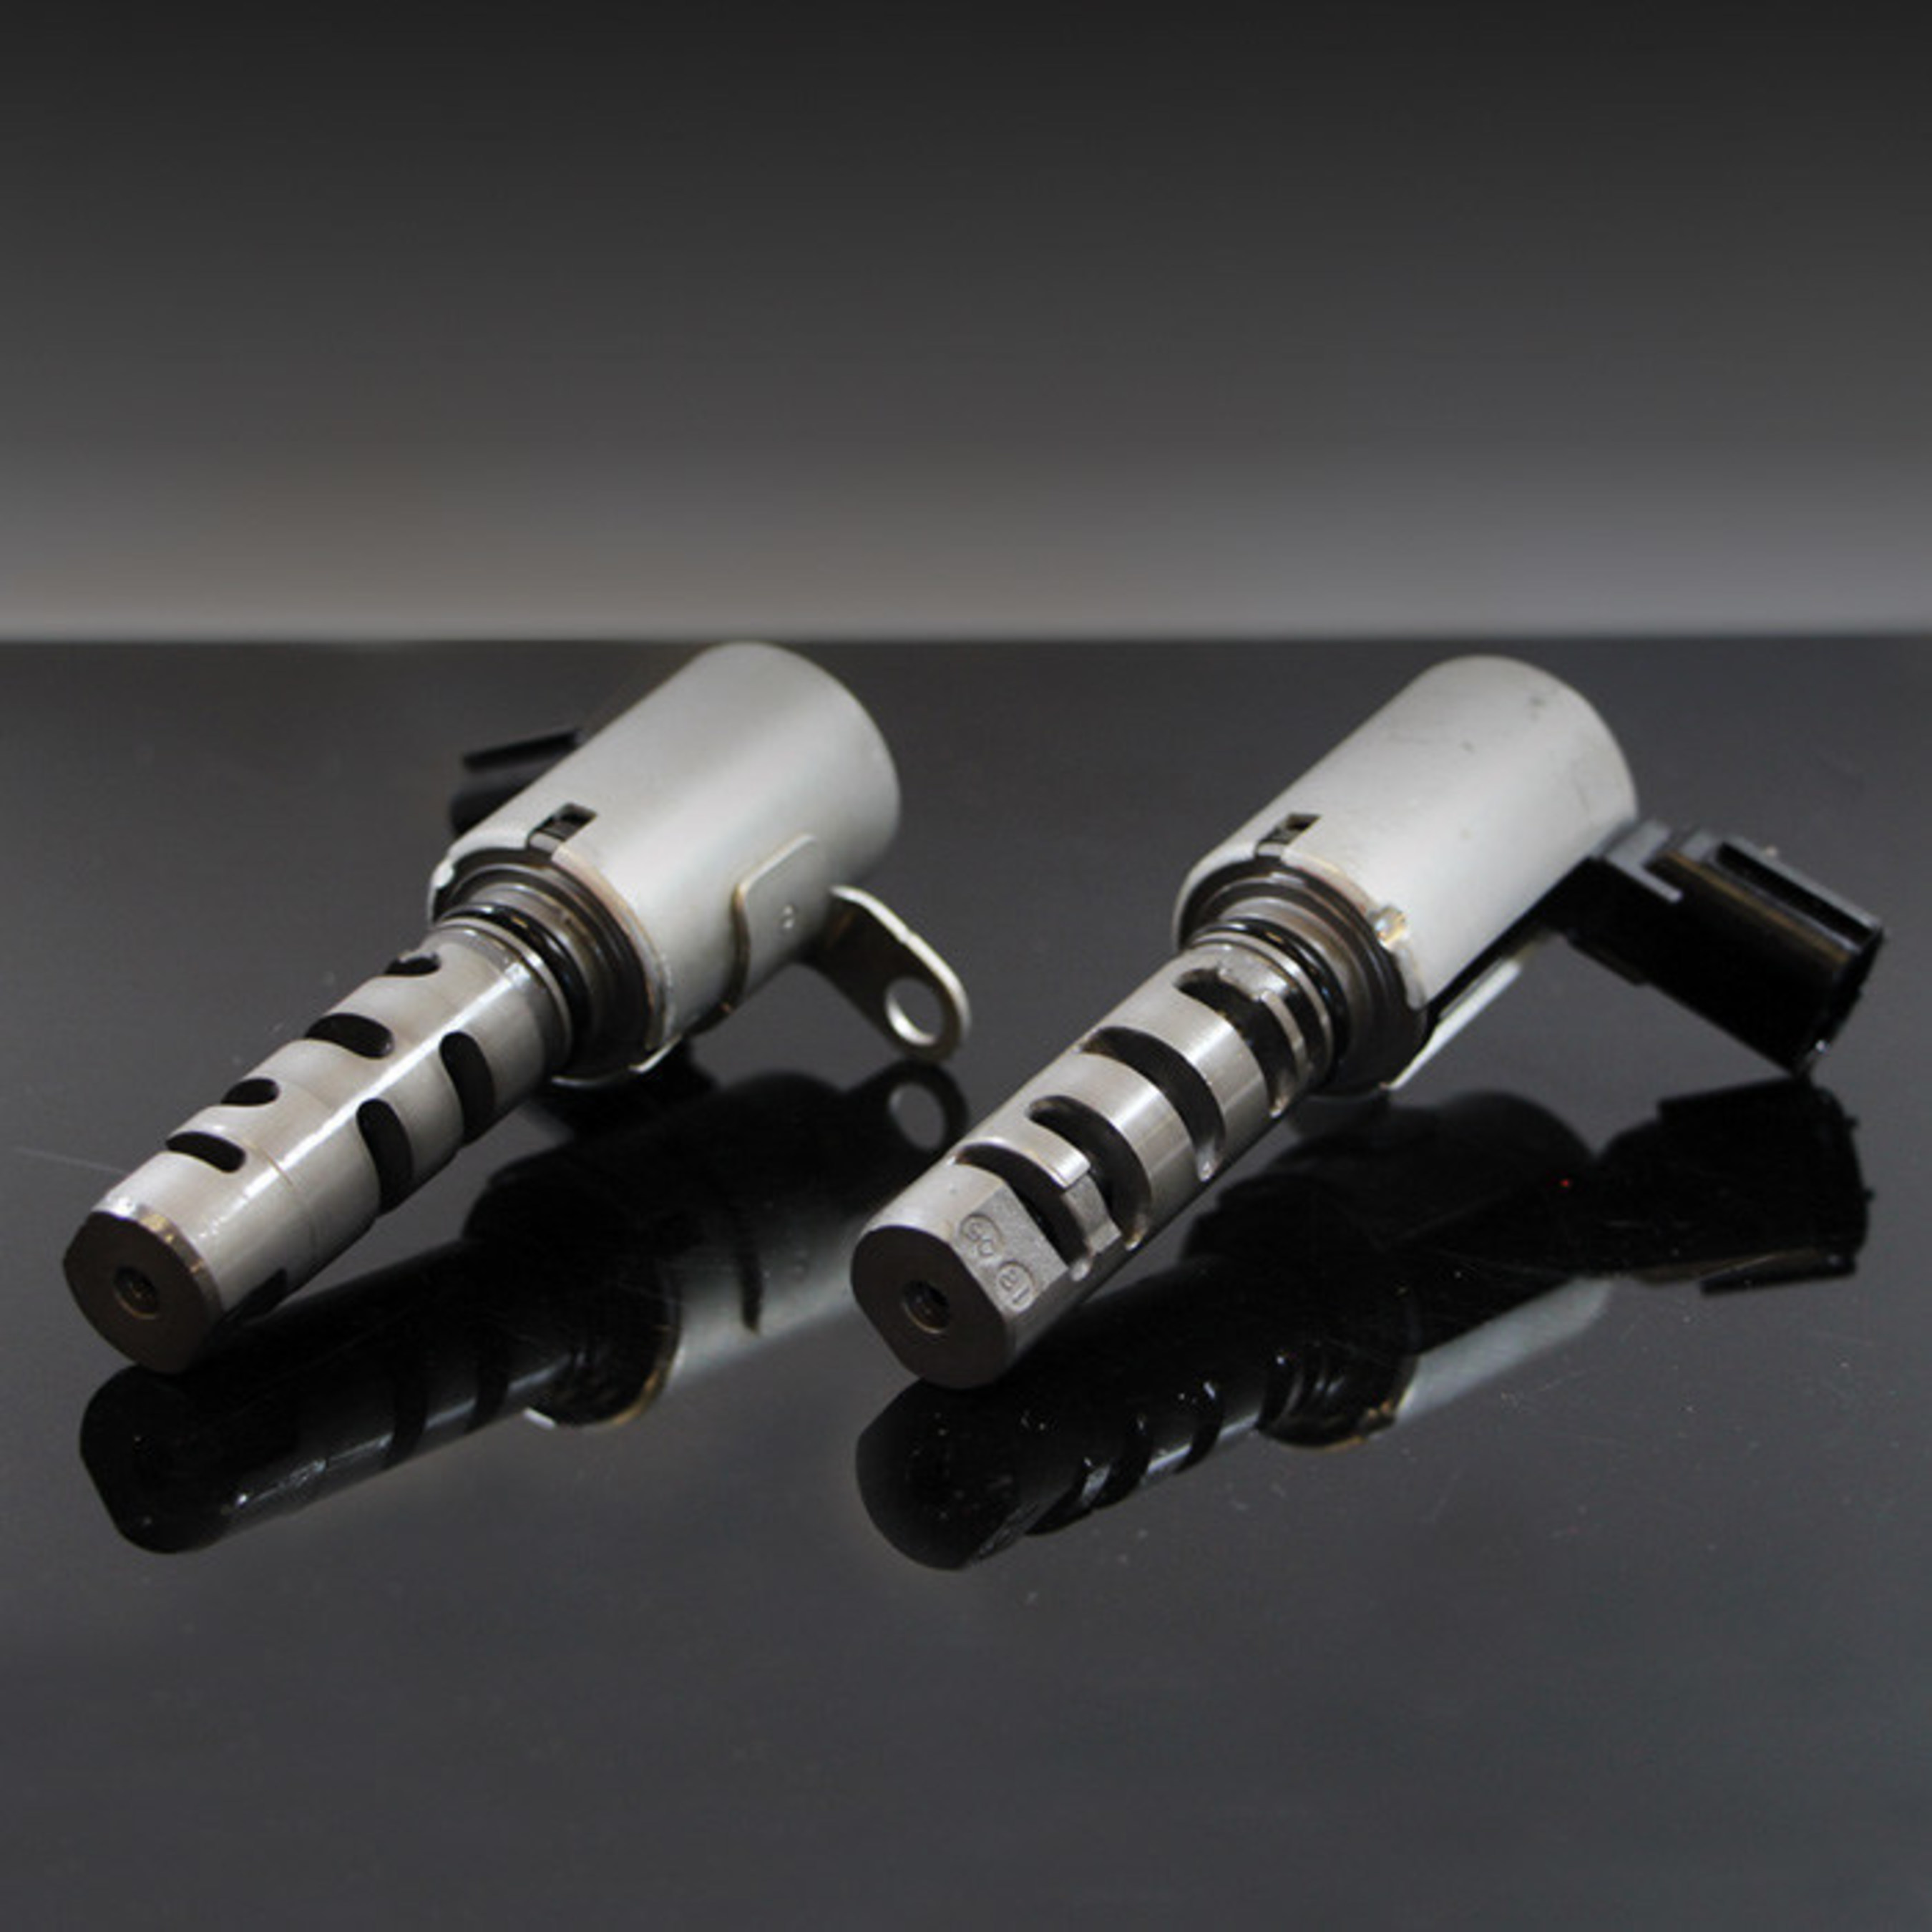 Standard and Intermotor's new line of variable valve timing (VVT) solenoids and sprockets provides technicians with aftermarket-leading coverage.